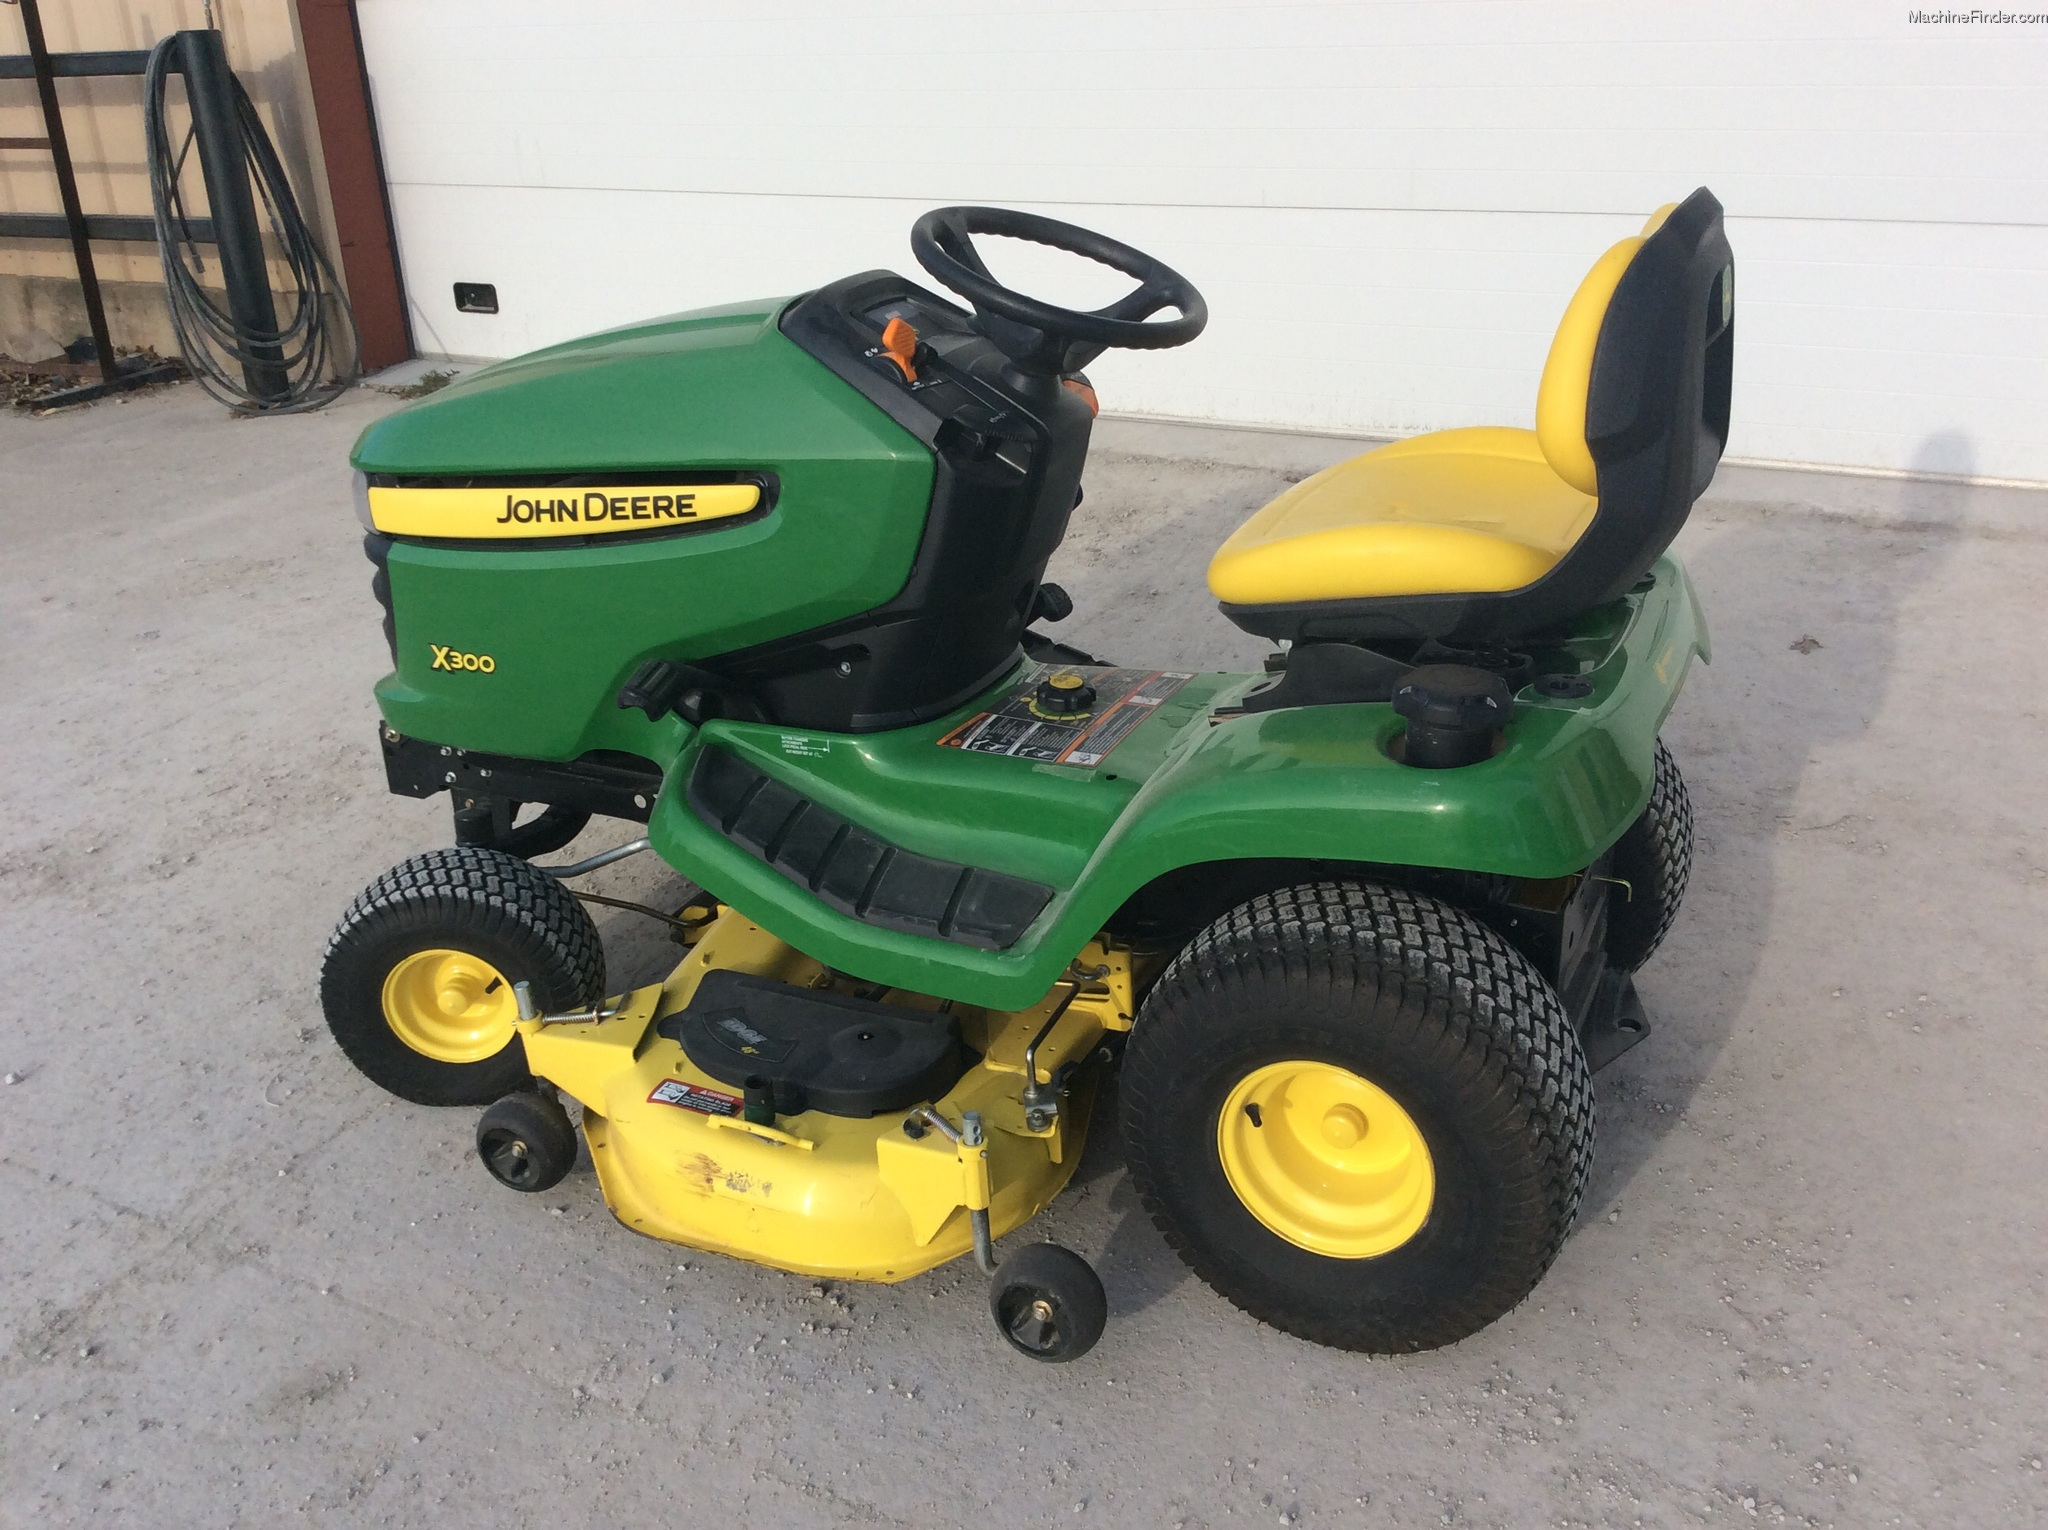 2012 john deere x300 lawn garden and commercial mowing. Black Bedroom Furniture Sets. Home Design Ideas